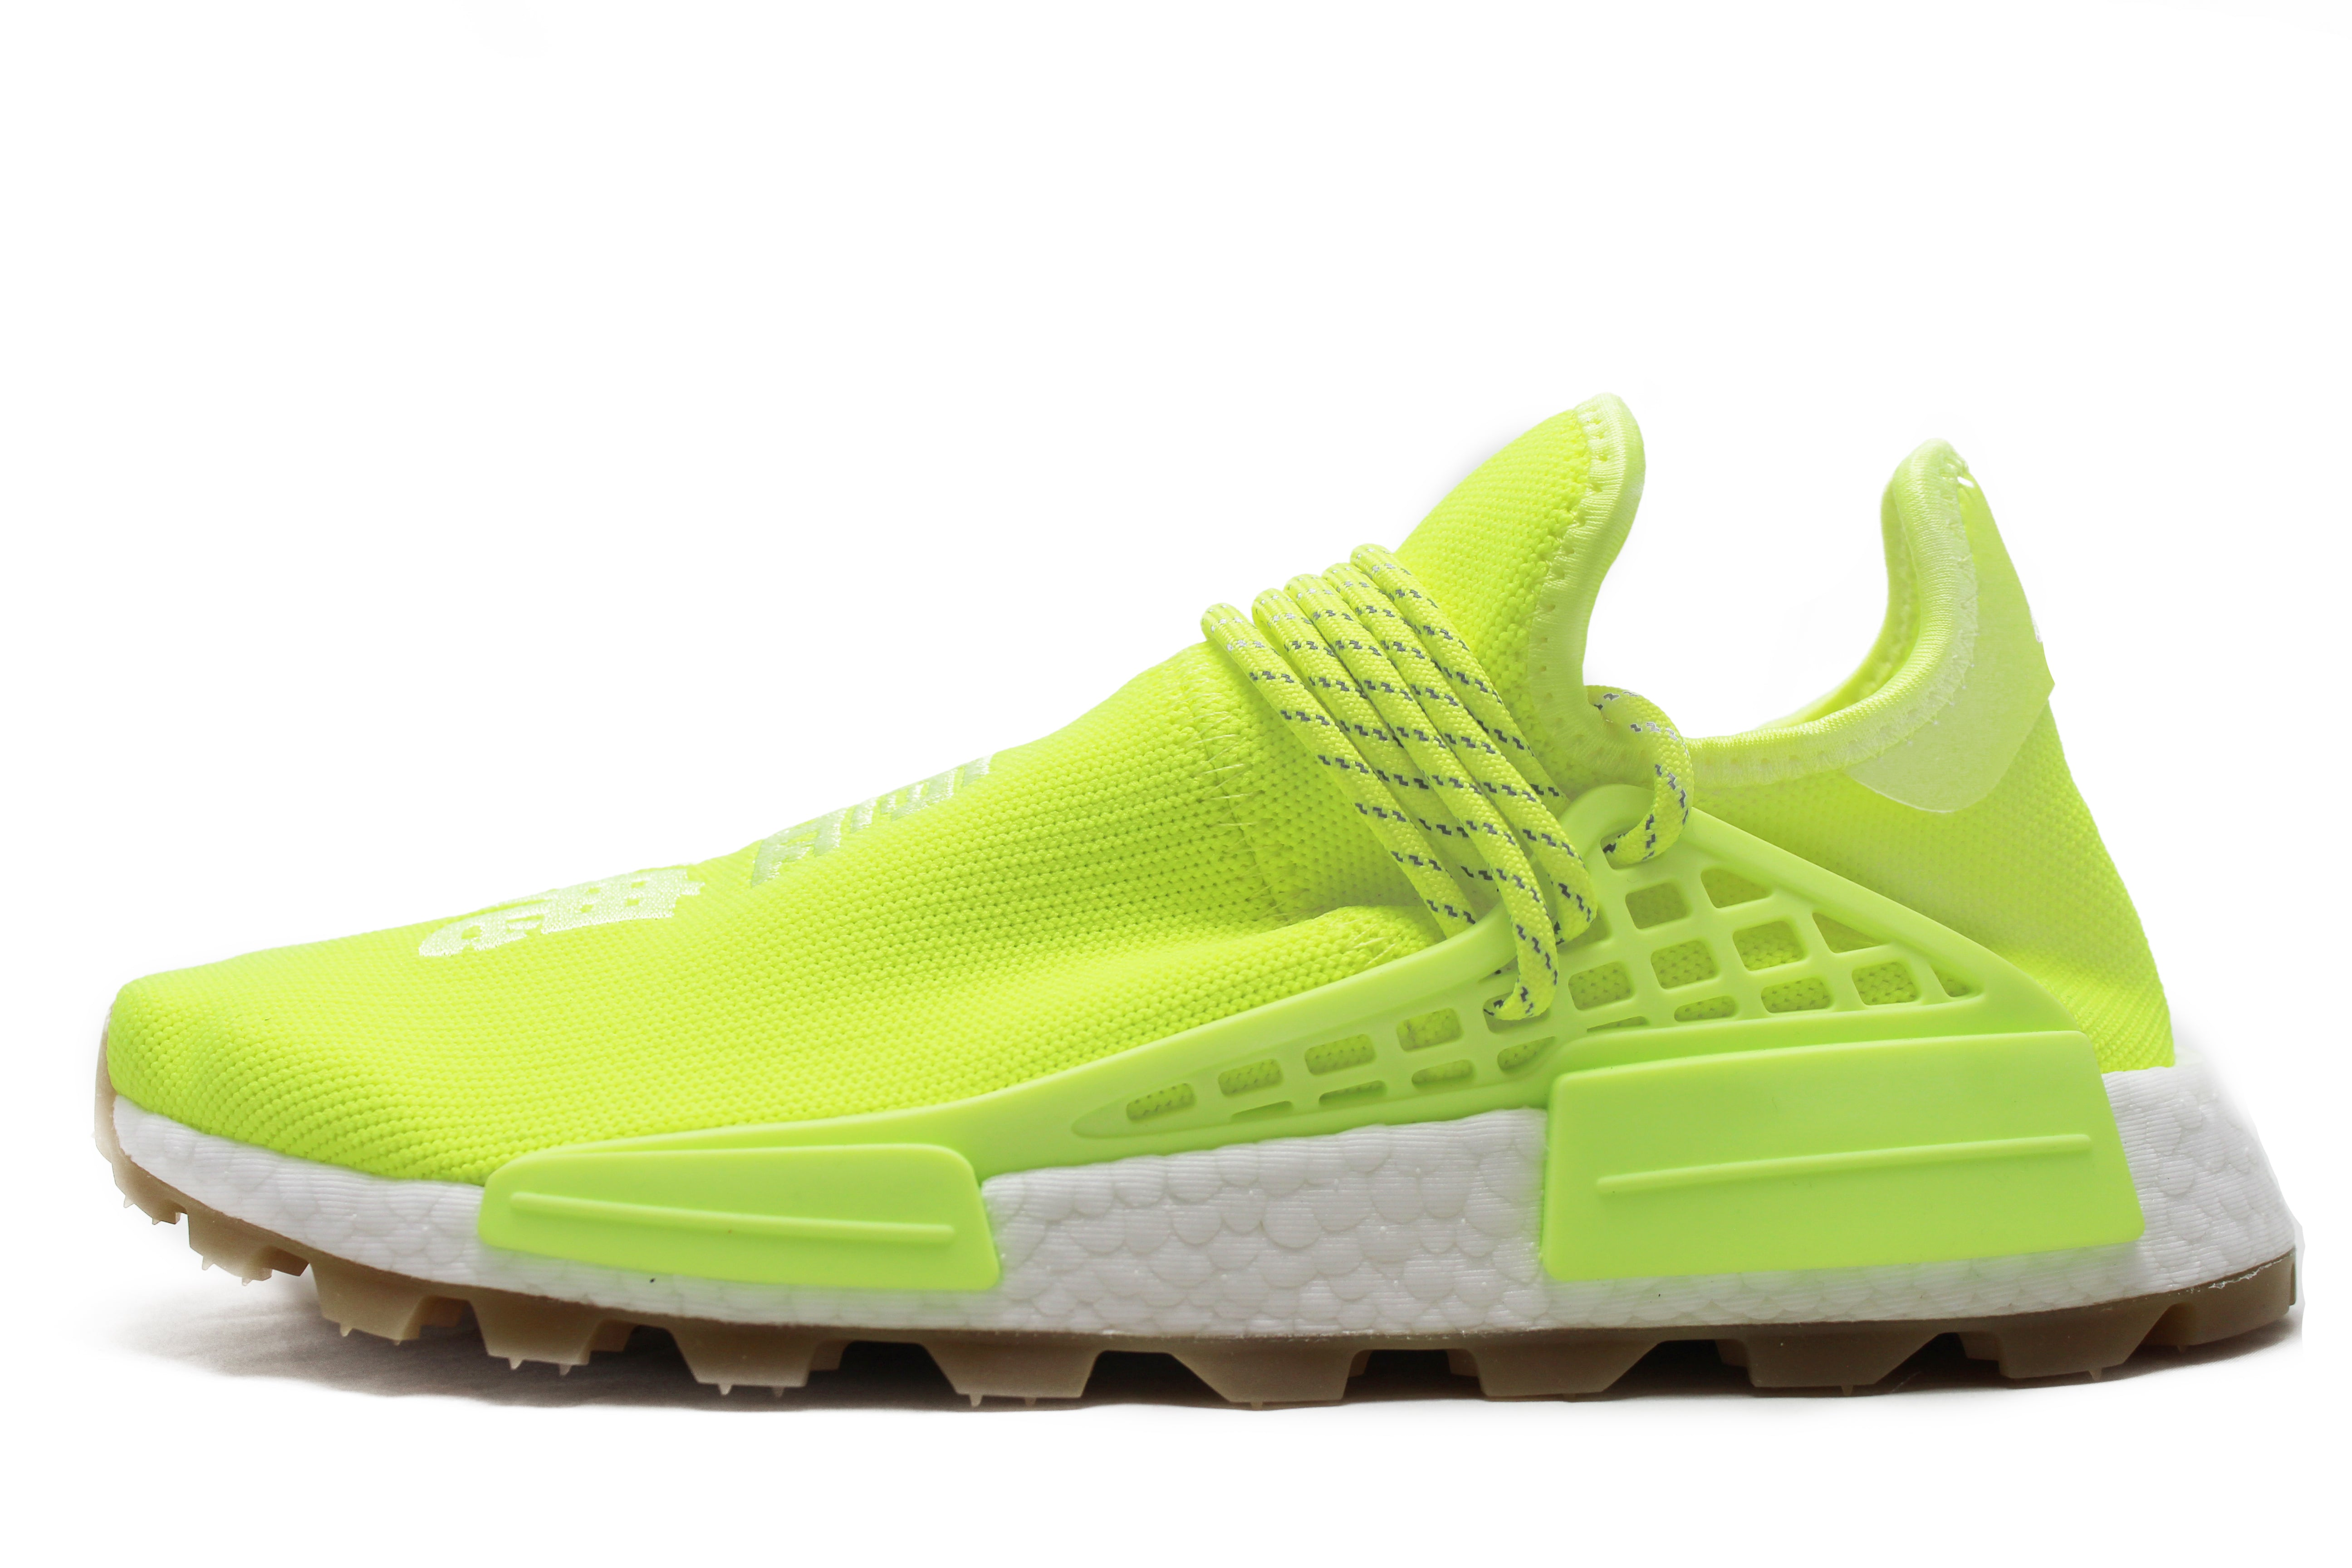 "Pharrell x Adidas NMD PRD HU ""Now Is Her Time"" Solar Yellow"